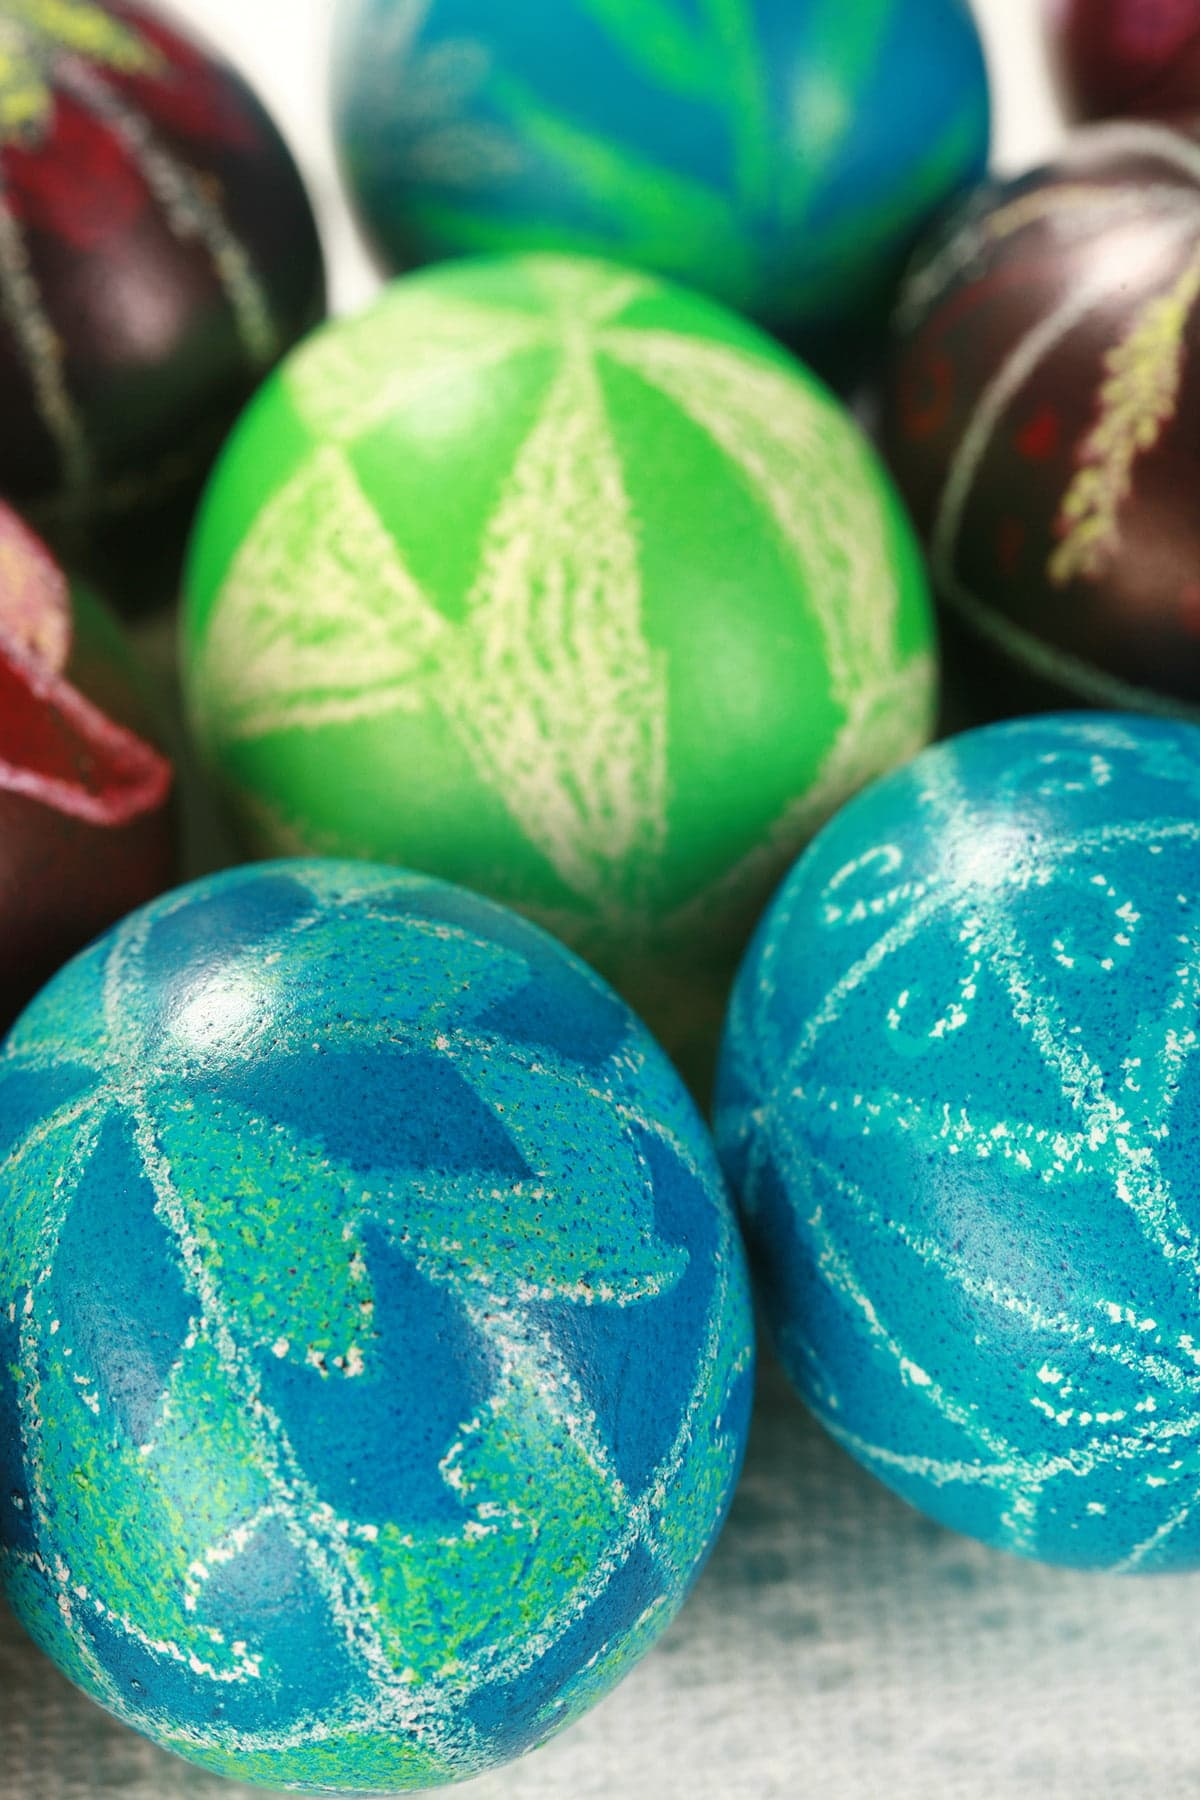 A close up view of several brightly coloured pysanky easter eggs.